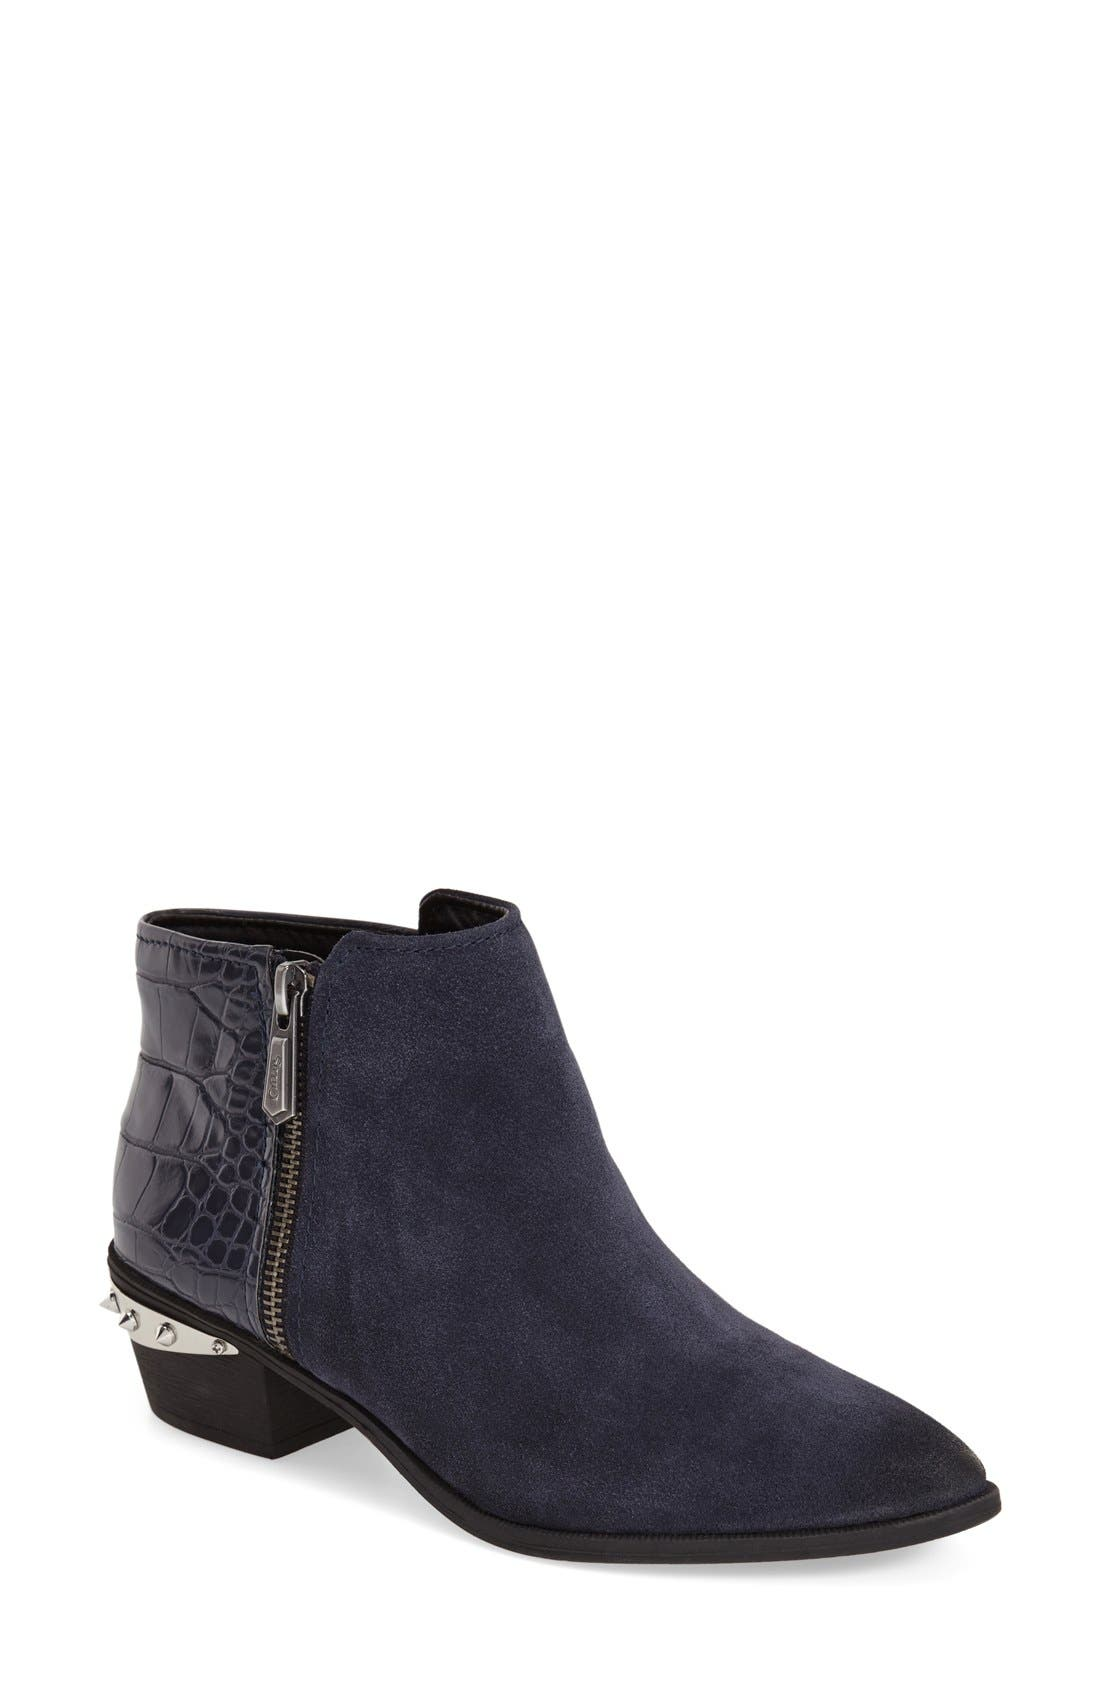 Alternate Image 1 Selected - Circus by Sam Edelman 'Holt' Bootie (Women)